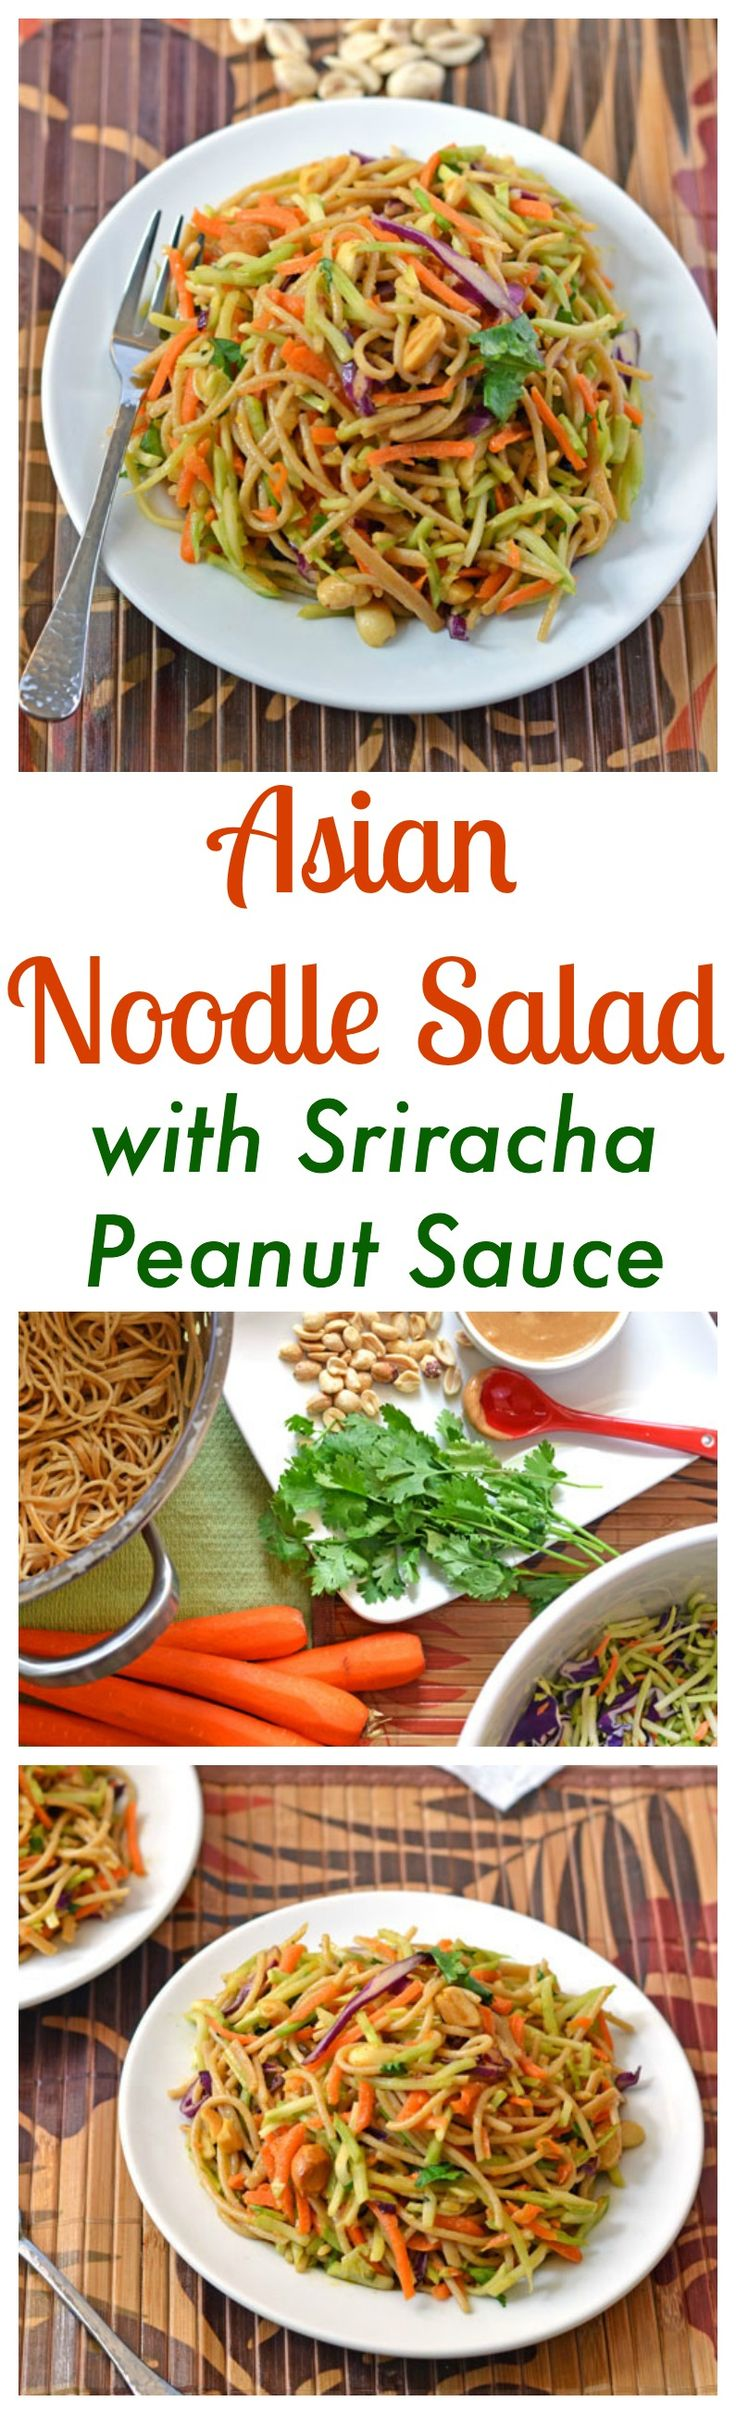 Asian Noodle Salad with Sriracha Peanut Sauce